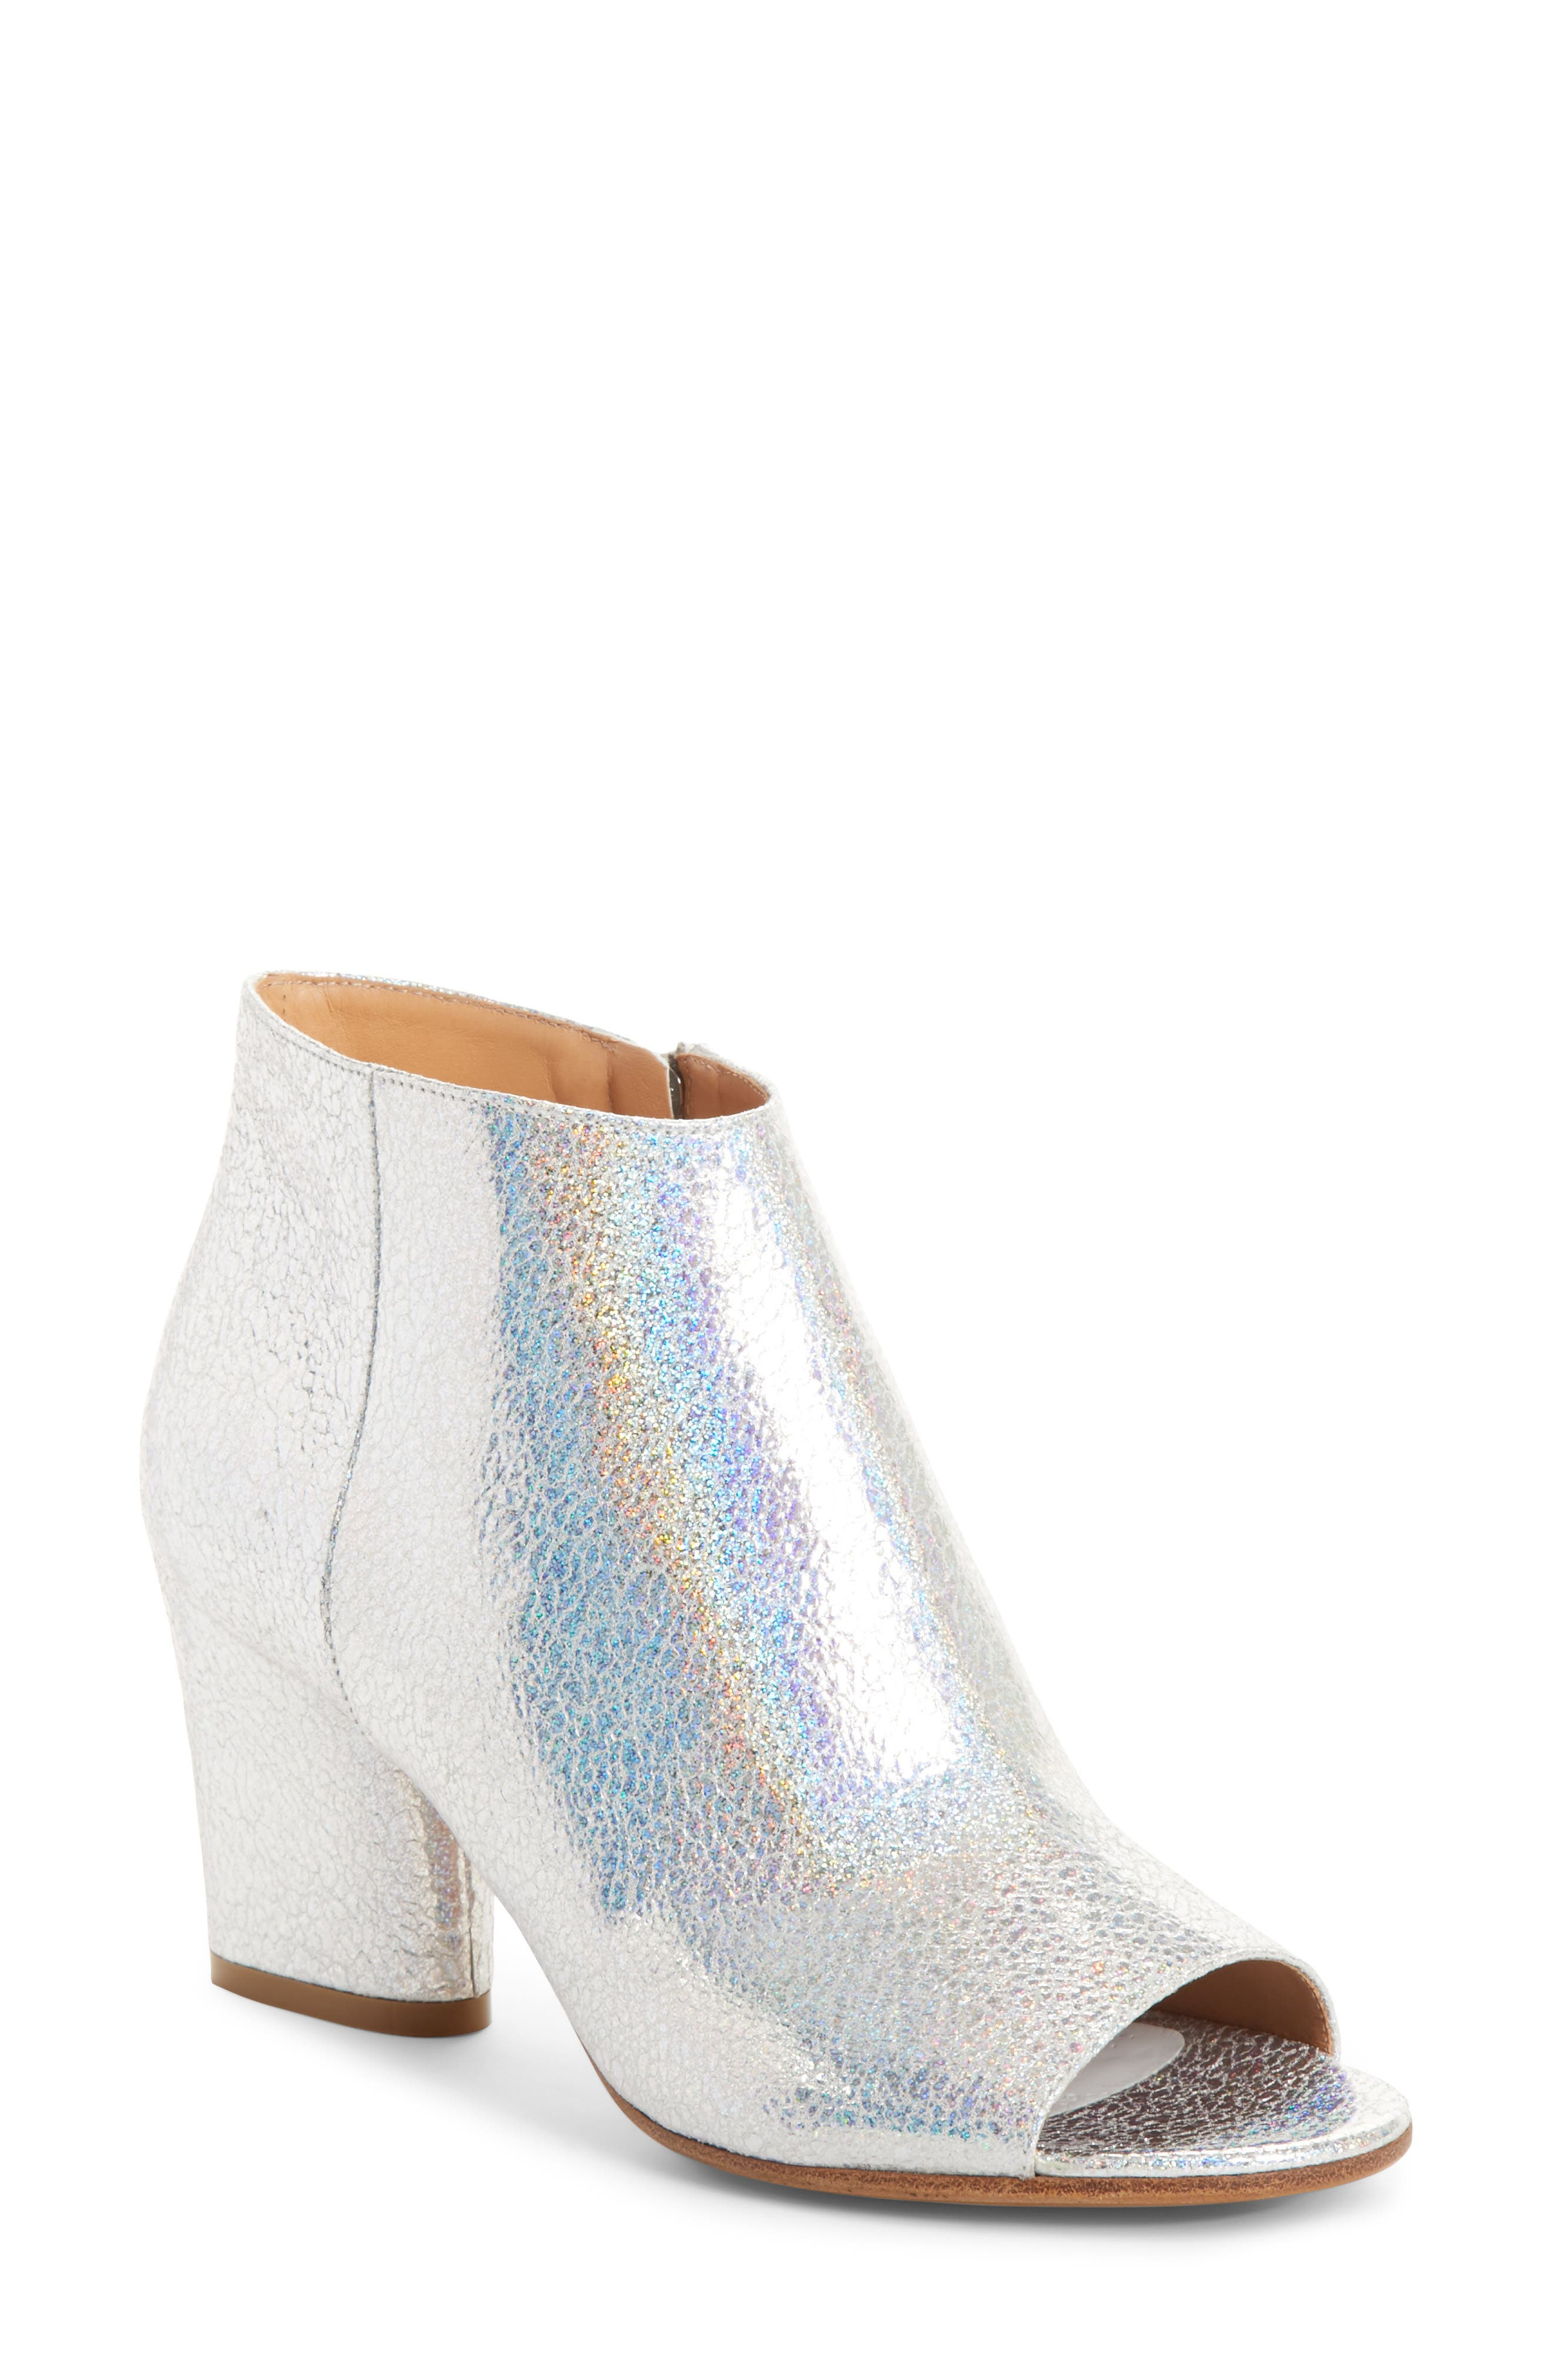 Maison Margiela Metallic Open Toe Ankle Boot (Women)